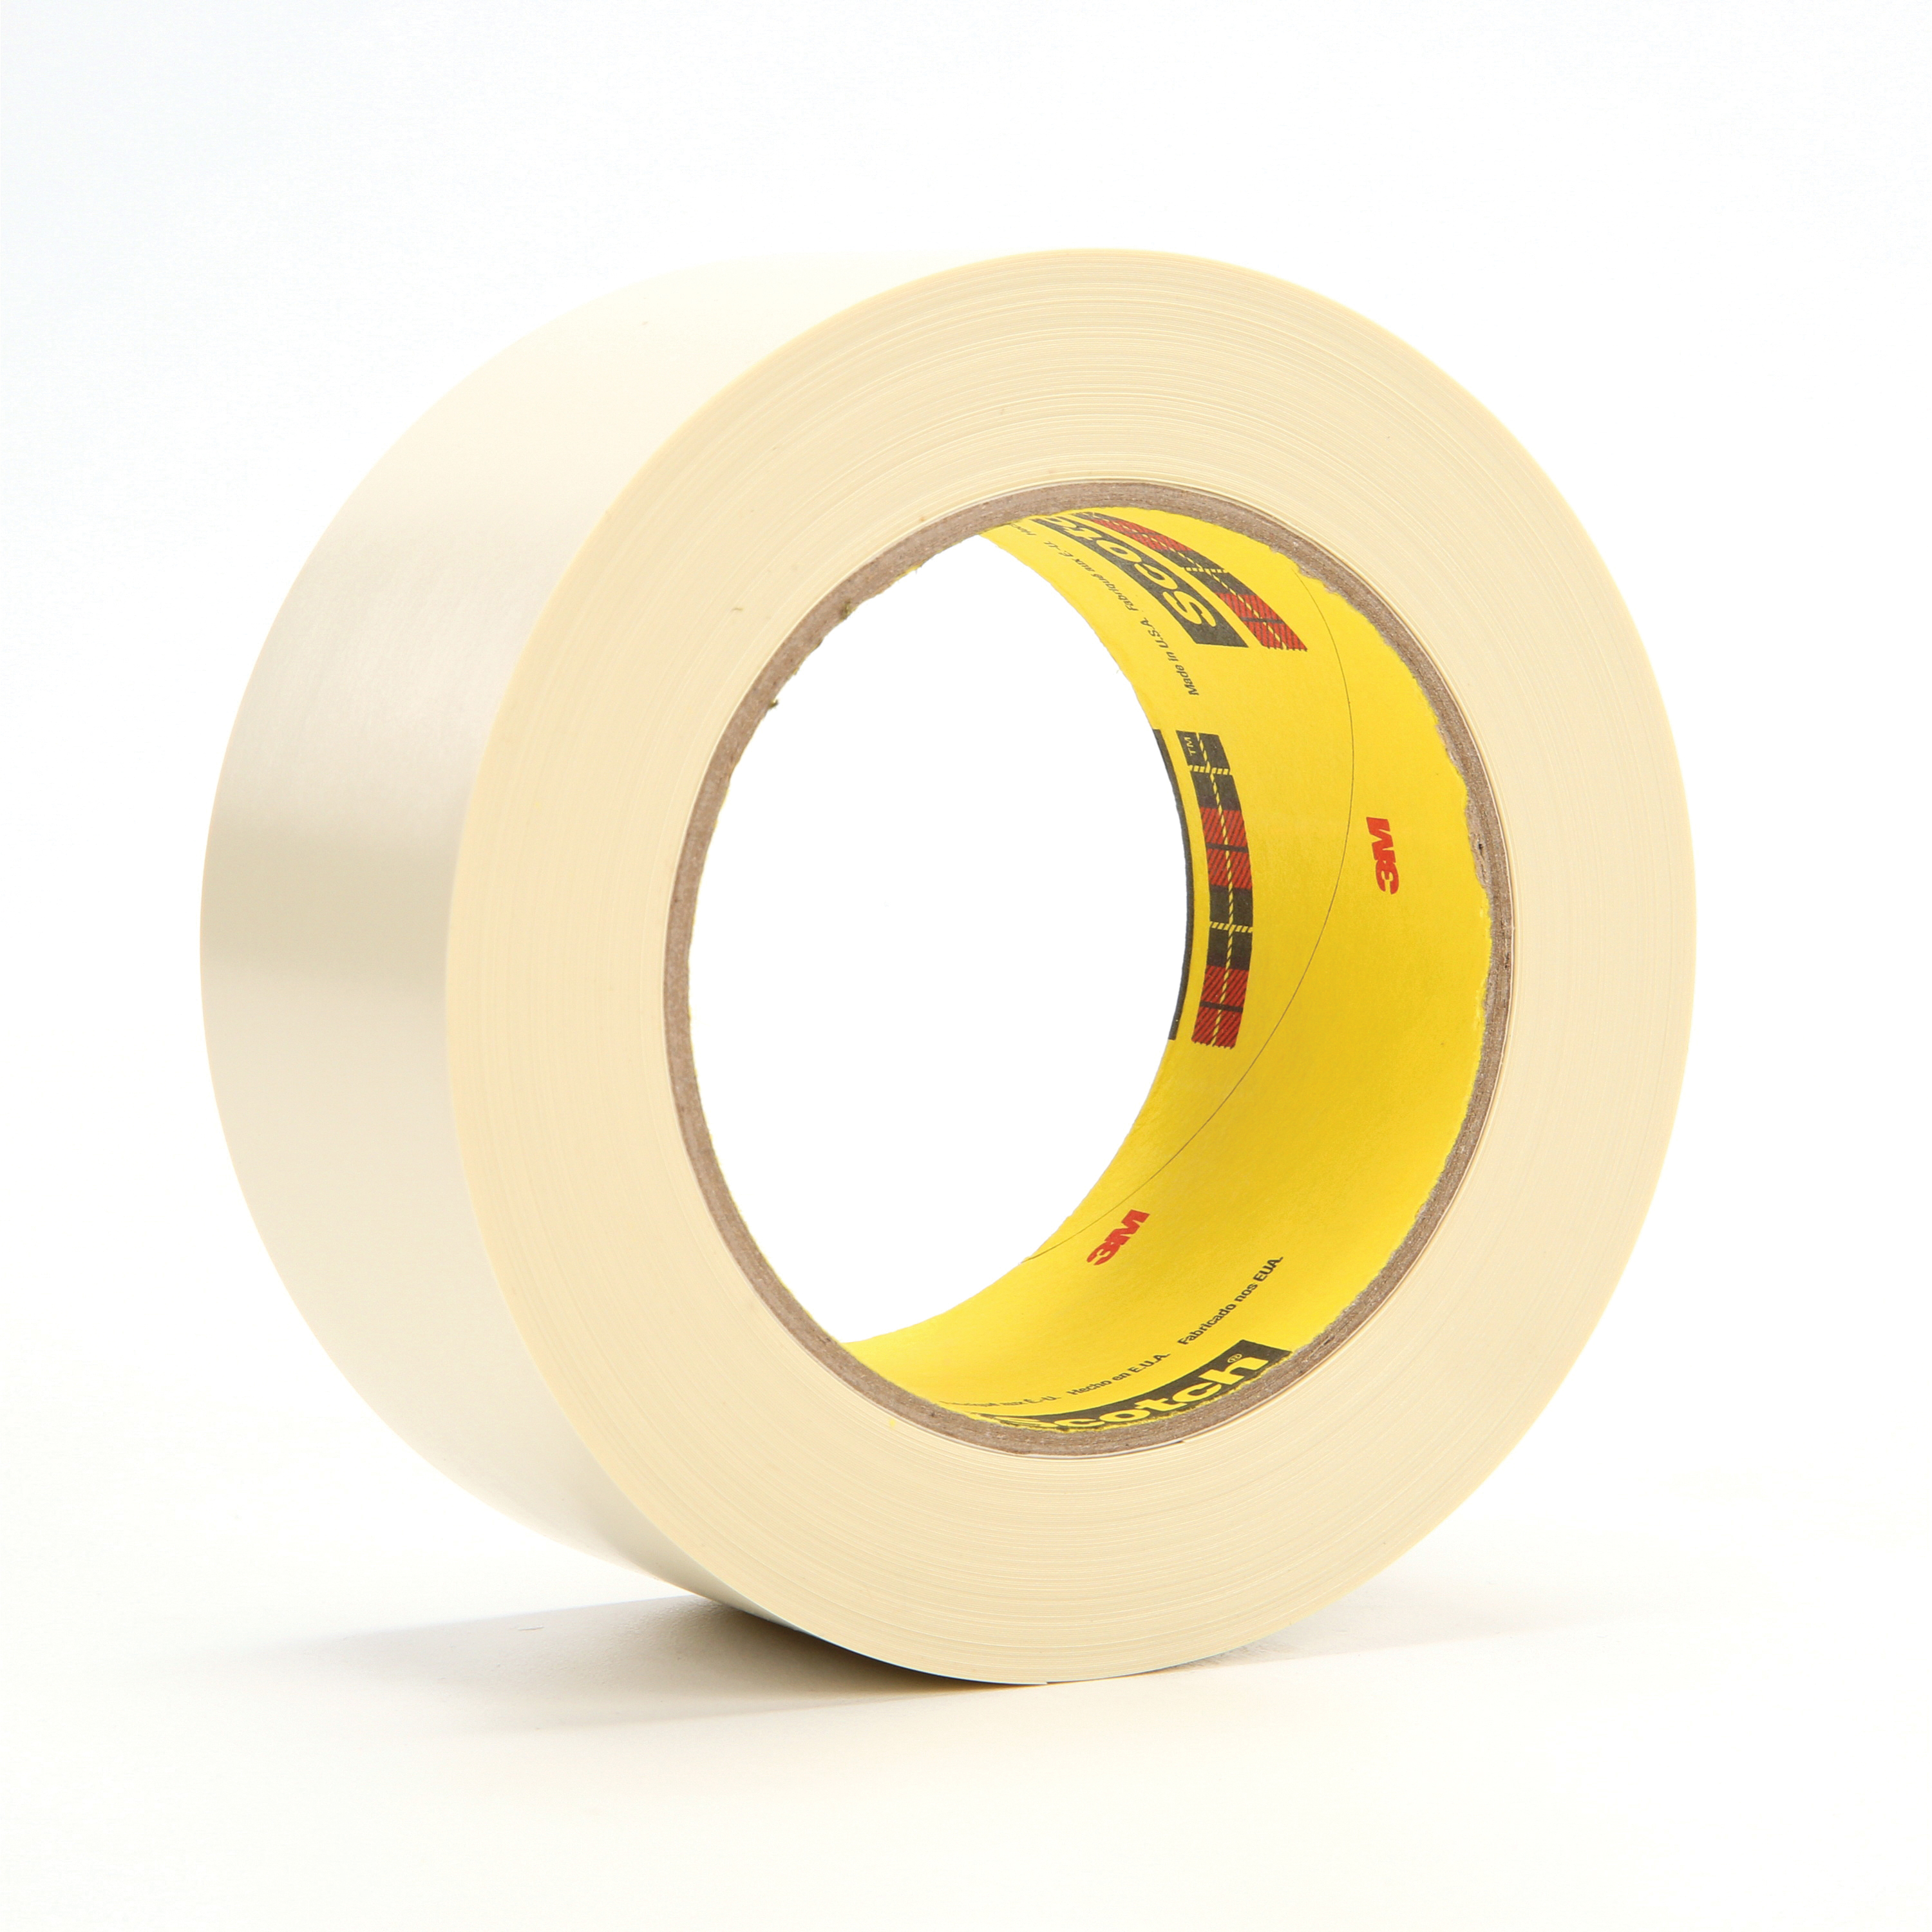 3M™ 021200-85617 Electroplating Tape, 36 yd L x 2 in W, 7.1 mil THK, Rubber Adhesive, Vinyl Backing